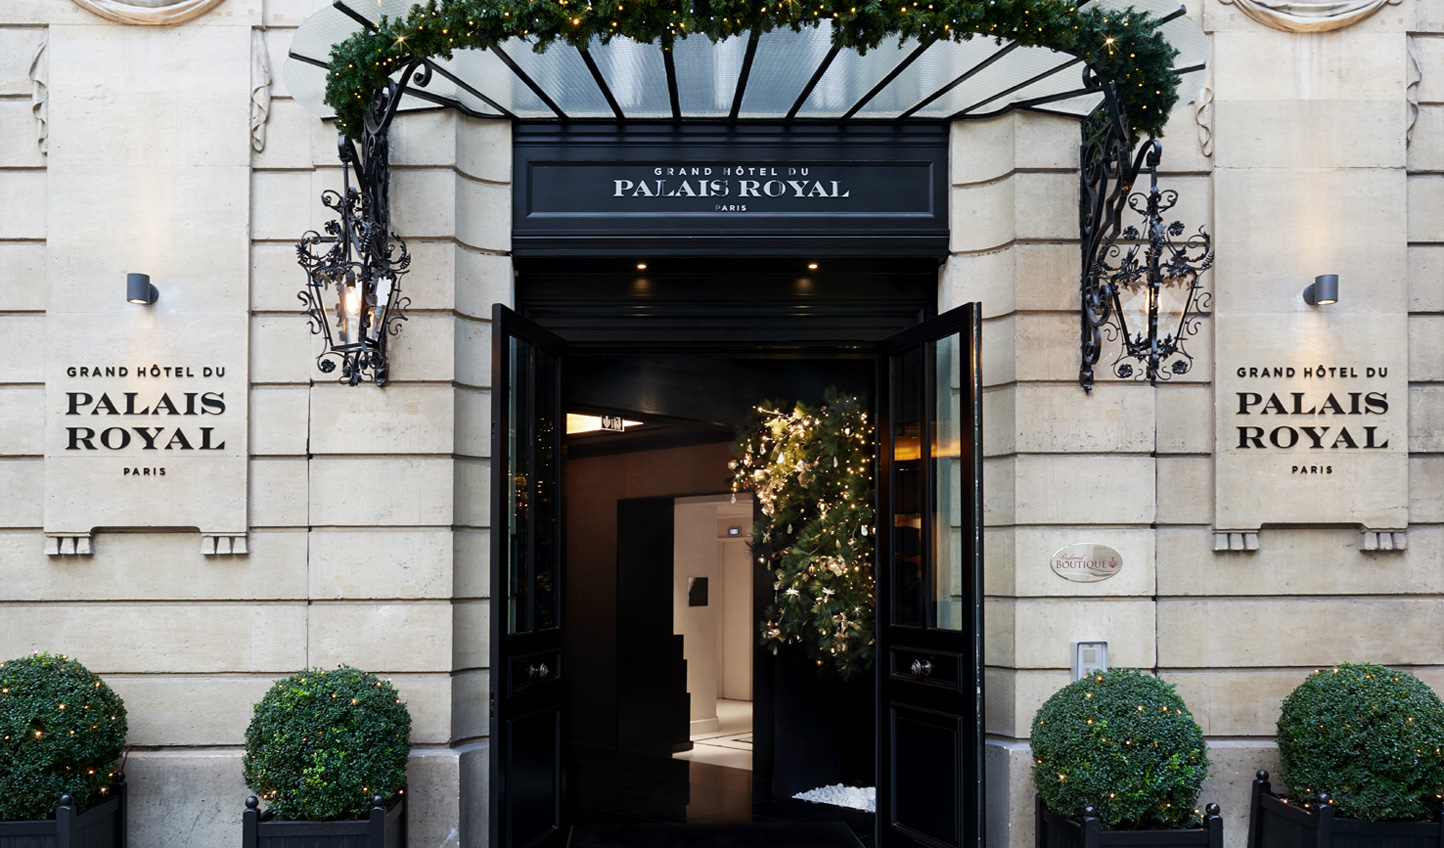 Welcome to Grand Hotel du Palais Royal